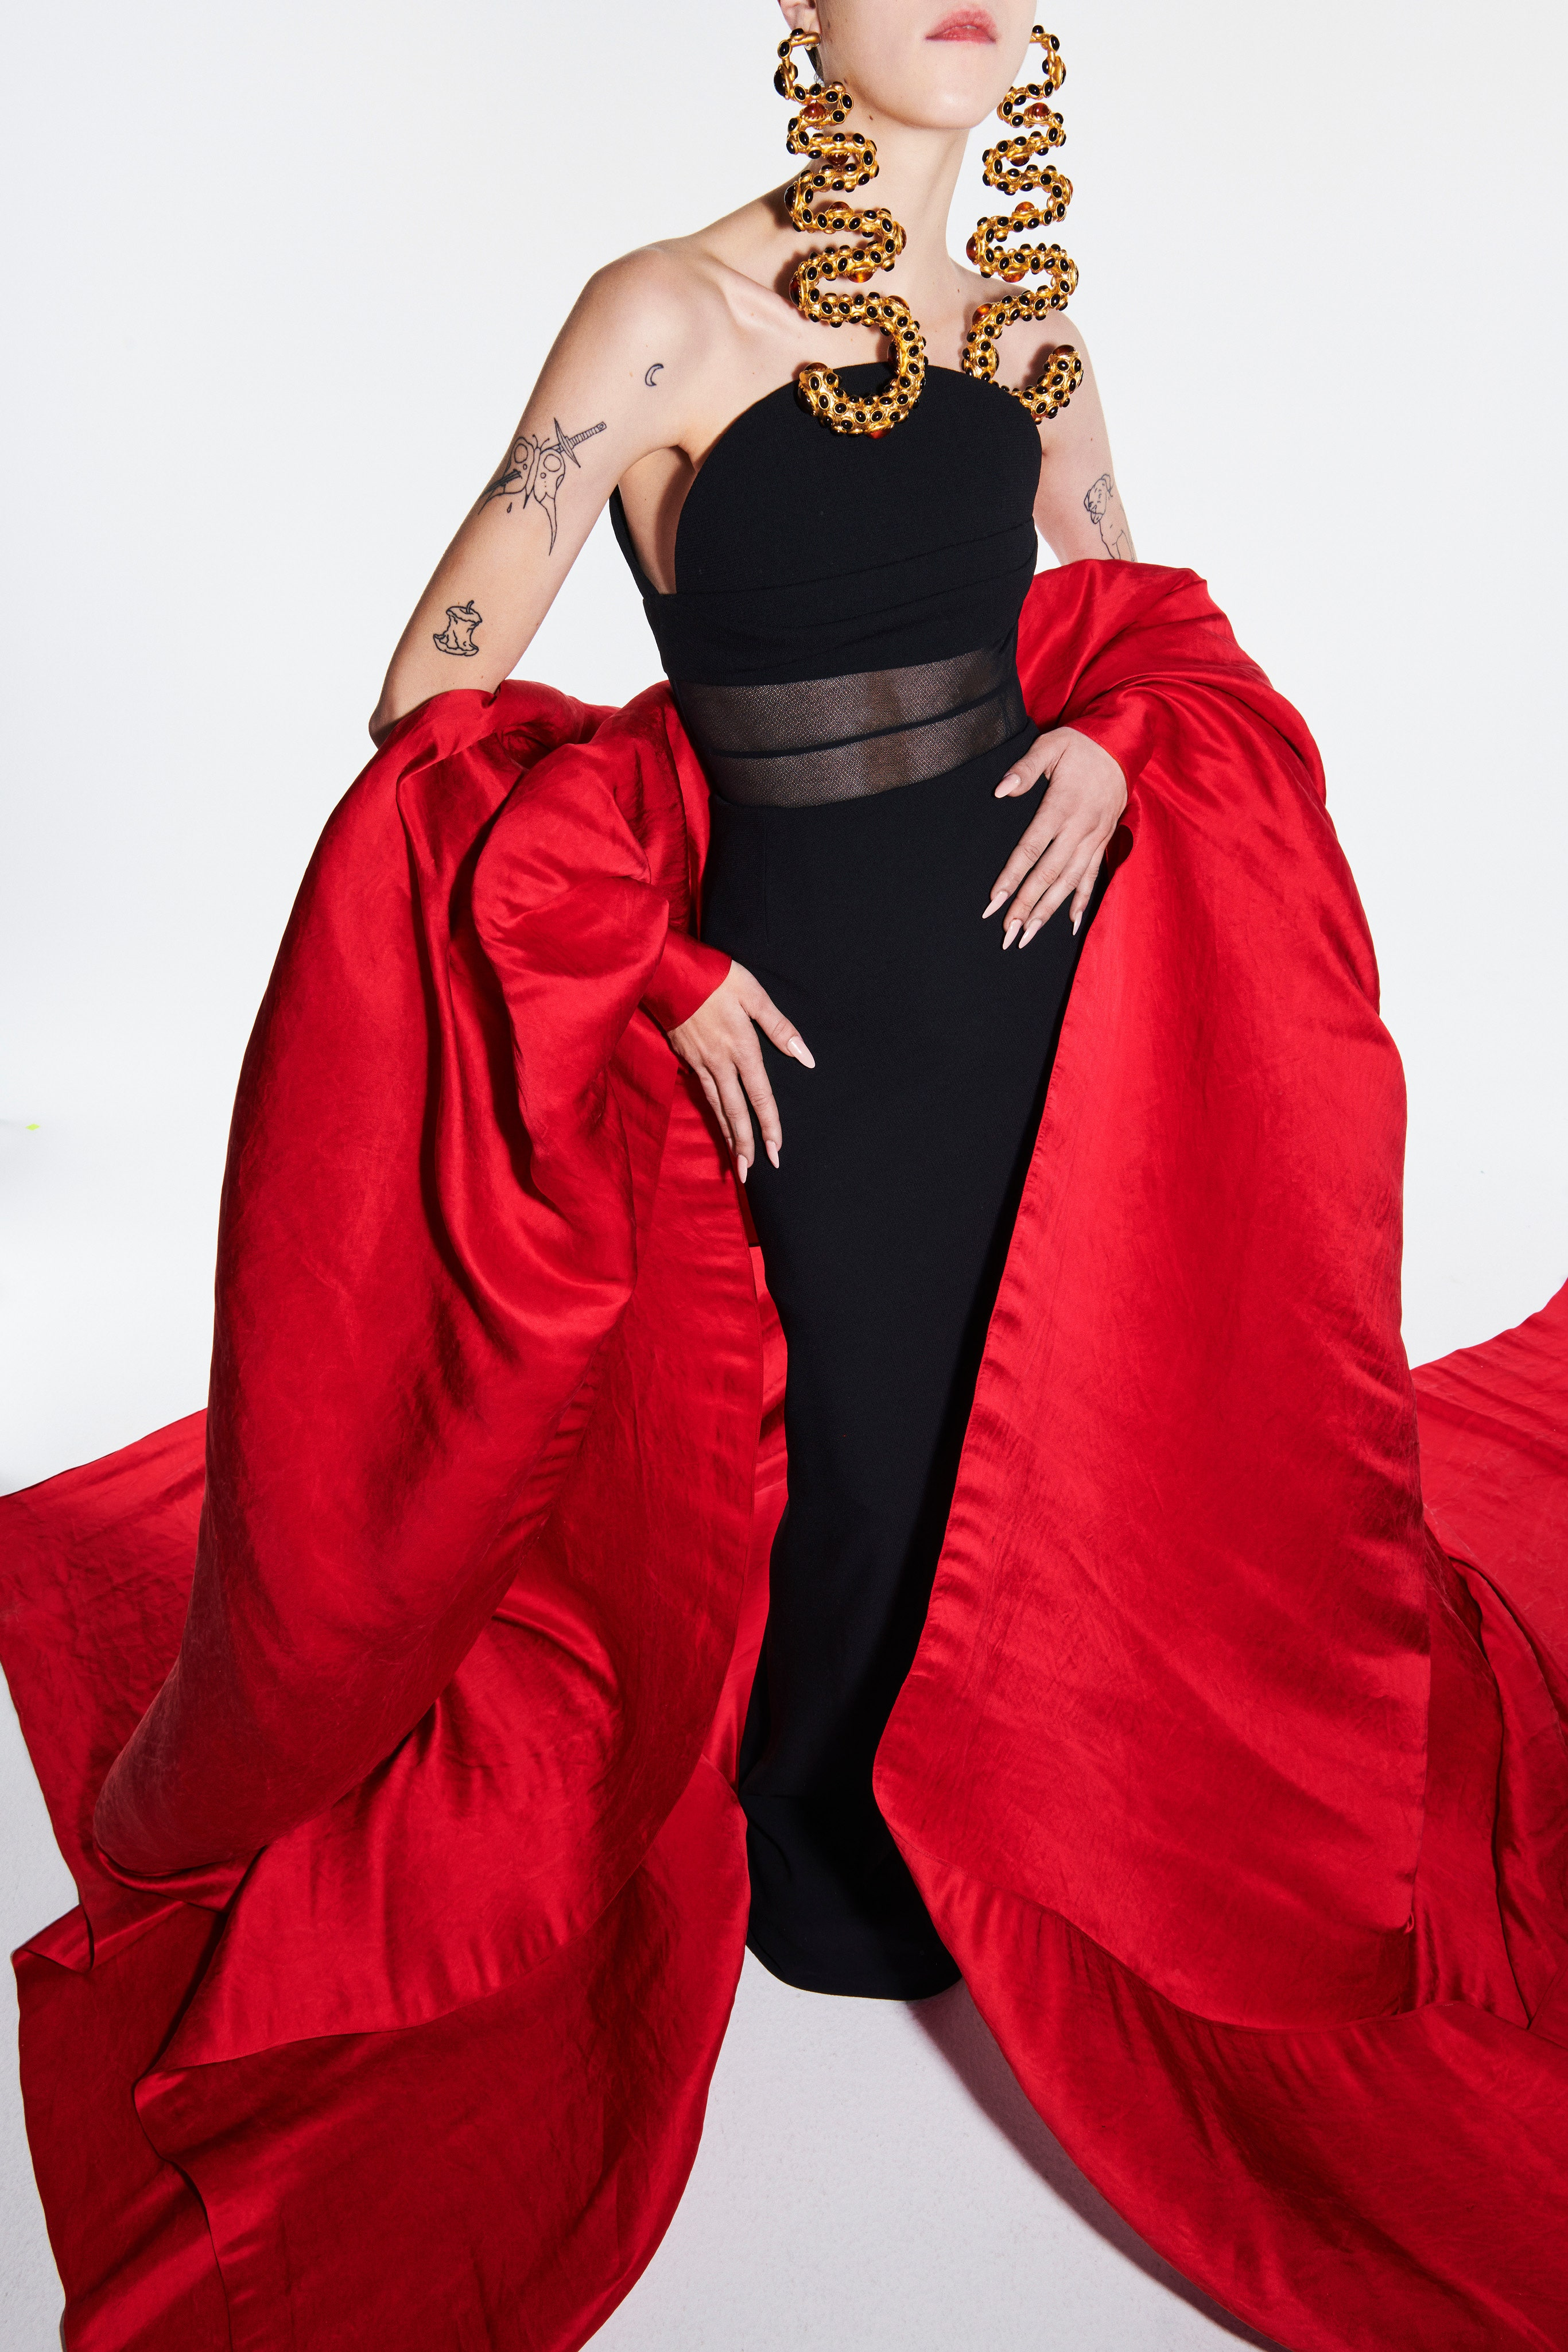 Schiaparelli Spring 2021 Couture. A lady wearing a long black dress with red sleeves that drape down to create a train.